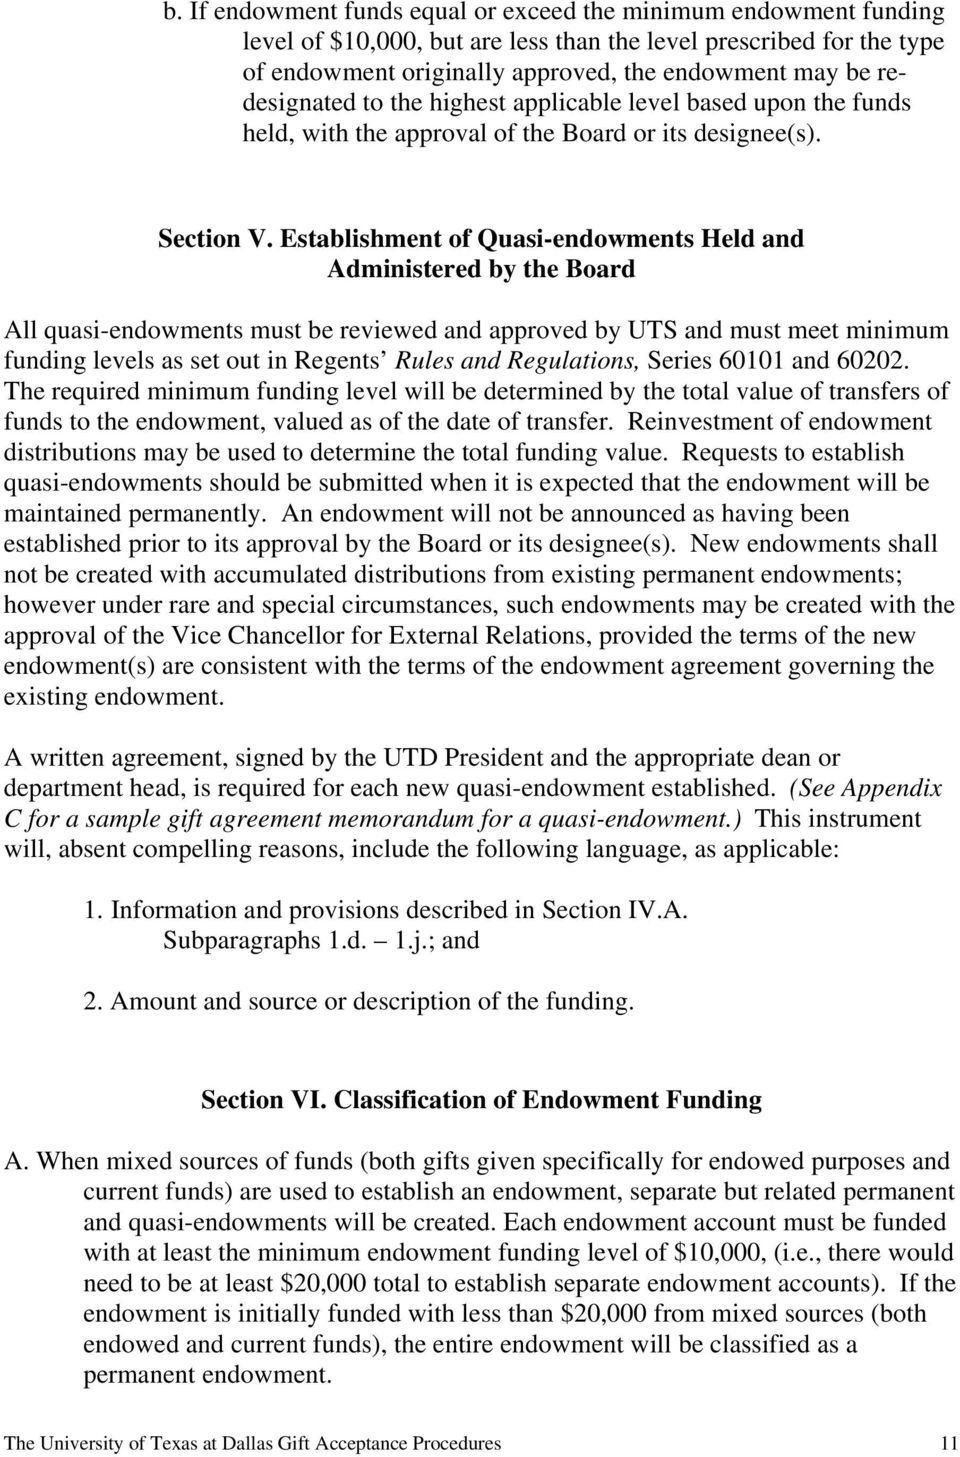 Establishment of Quasi-endowments Held and Administered by the Board All quasi-endowments must be reviewed and approved by UTS and must meet minimum funding levels as set out in Regents Rules and